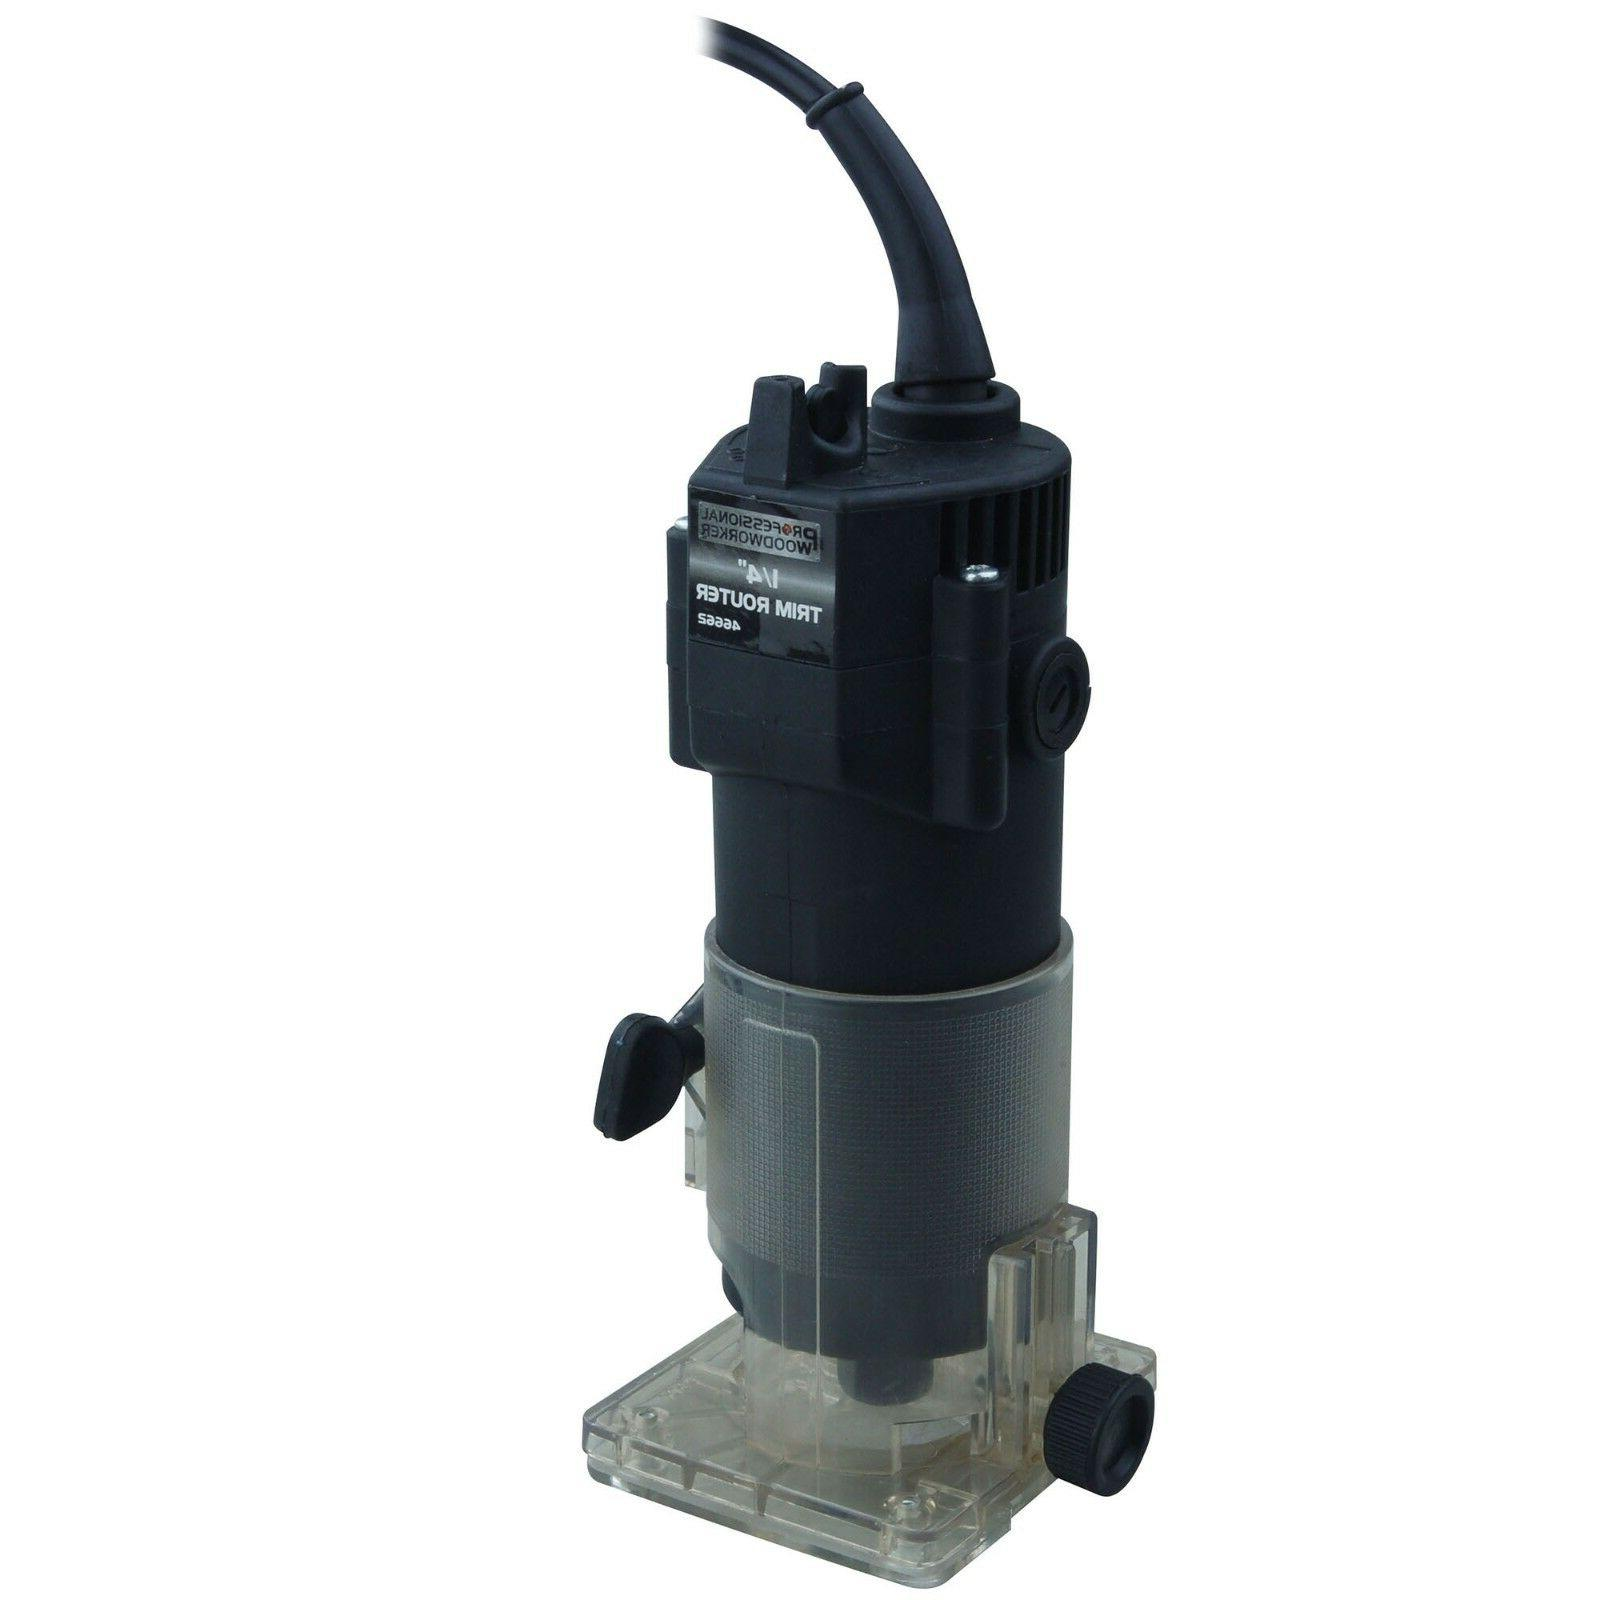 Router Woodworking Power Tool